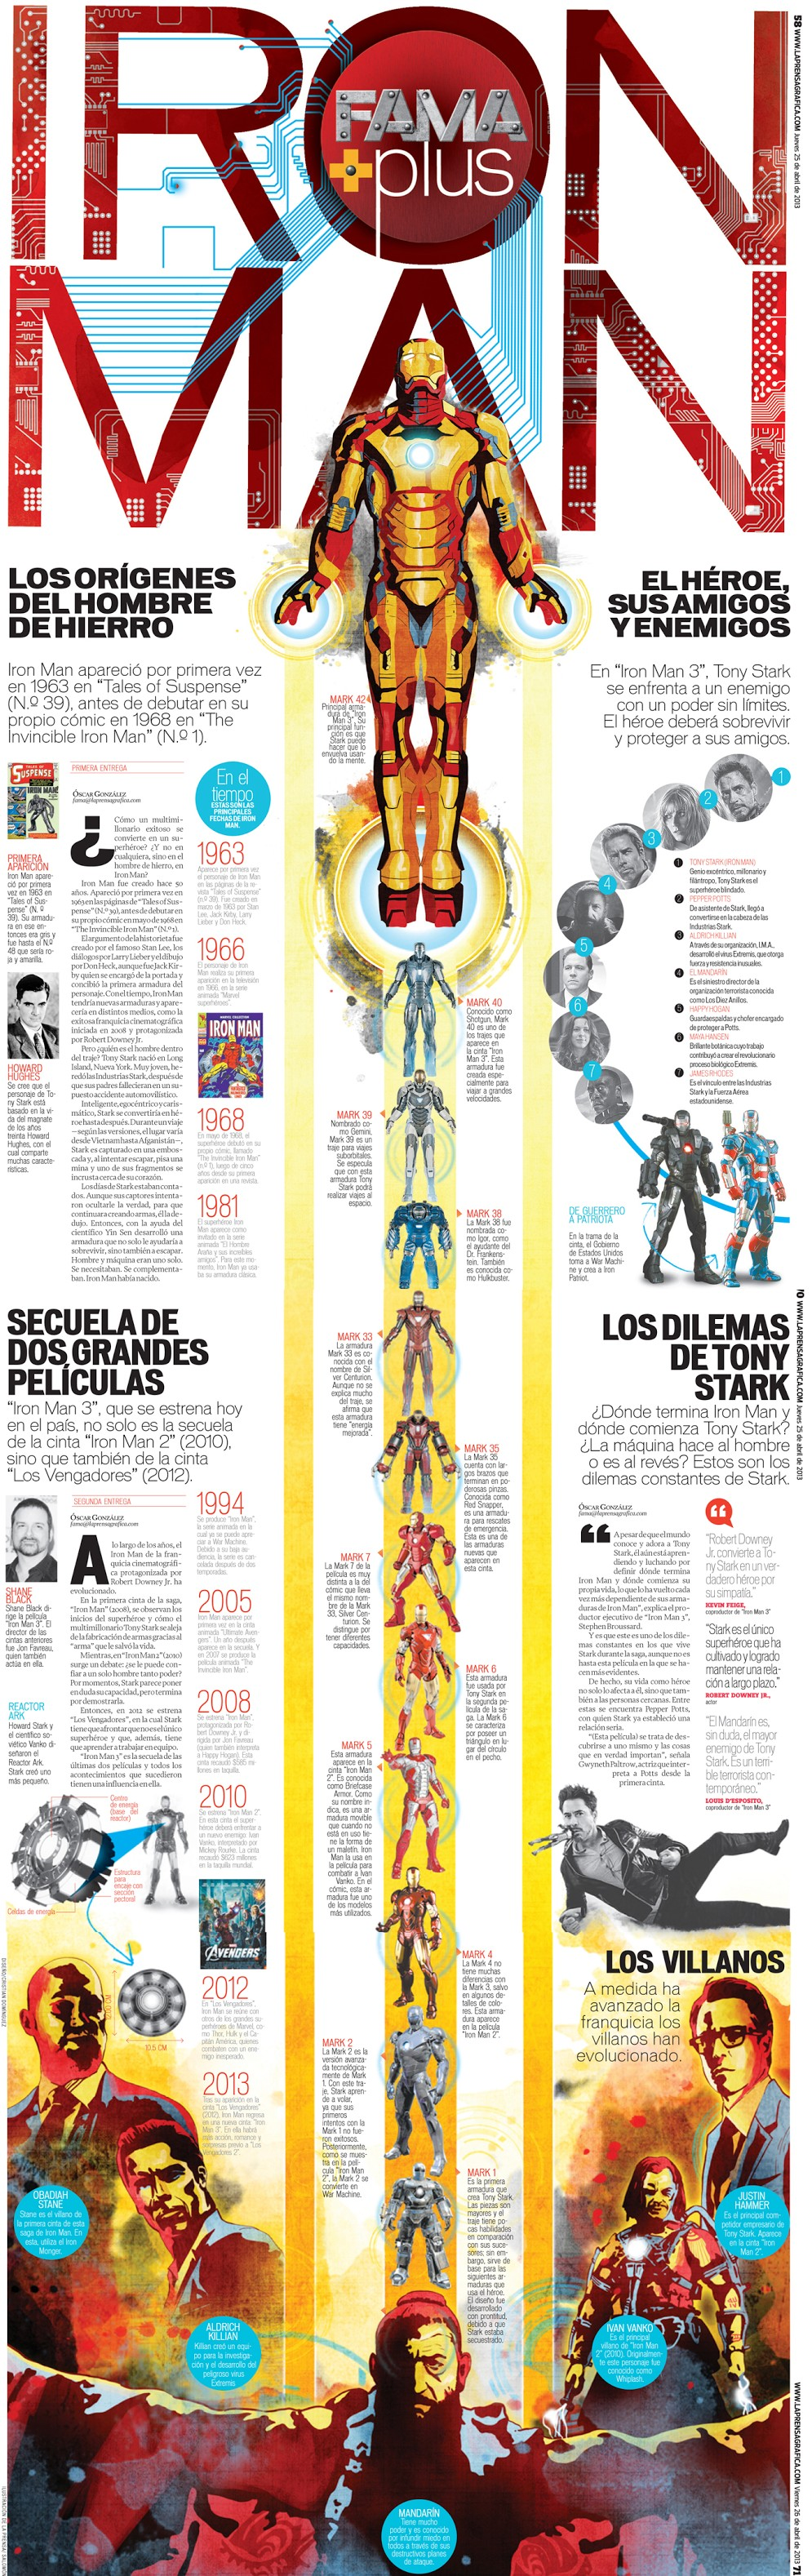 Iron Man 3, Infographic by Christian Dominguez  | LPG